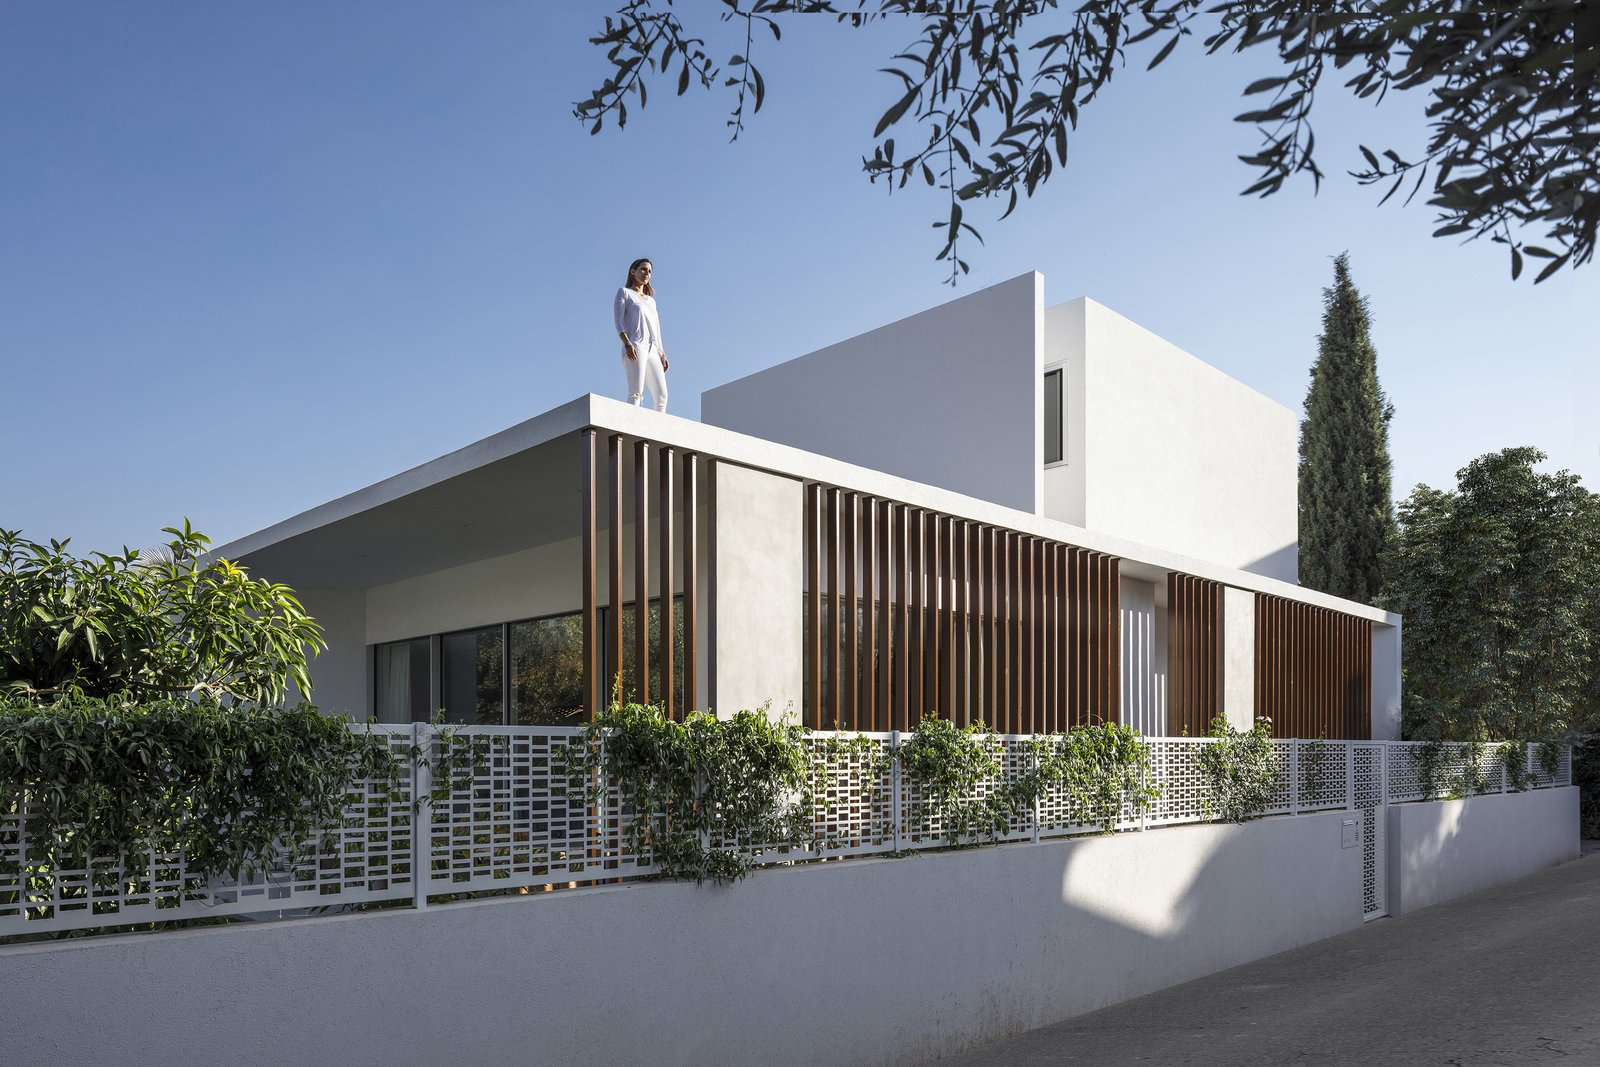 Exterior, Concrete Siding Material, Flat RoofLine, and House Building Type The fourth floor takes the form of a complete white cube with no visible windows or apertures.    Photo 4 of 19 in Sleek Concrete Cubes Form This Pavilion-Like Home in Israel